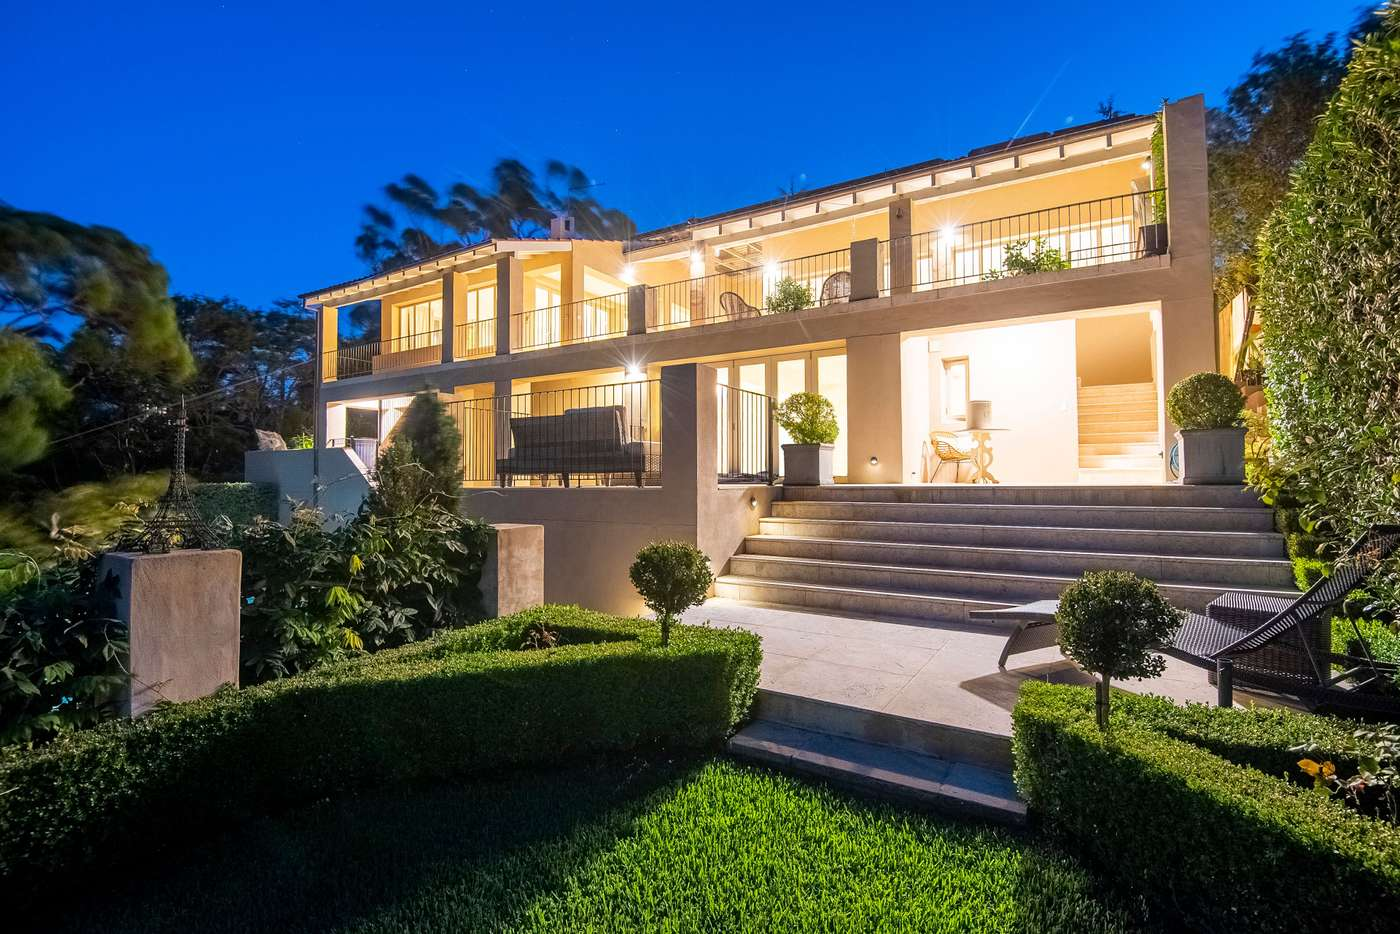 Main view of Homely house listing, 25 Wyong Road, Mosman NSW 2088